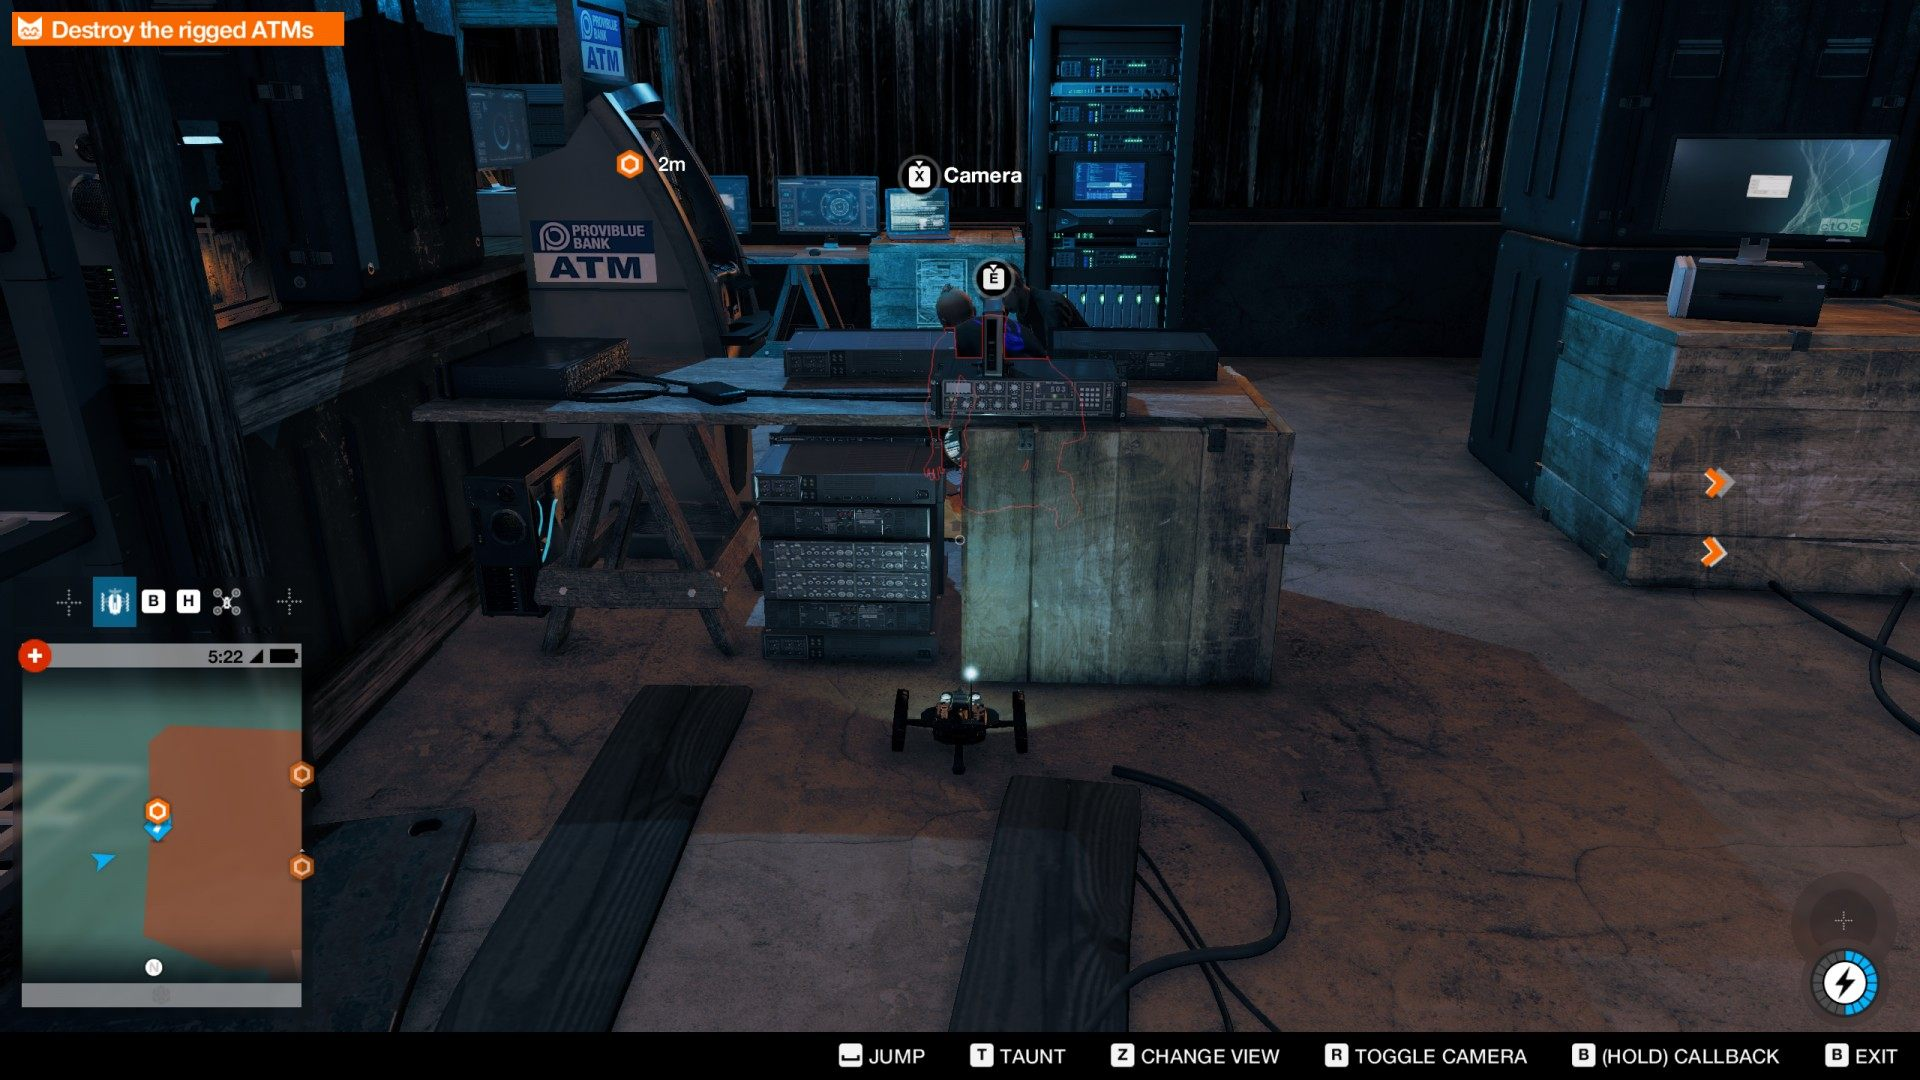 Watch Dogs  Destroy Rigged Atms